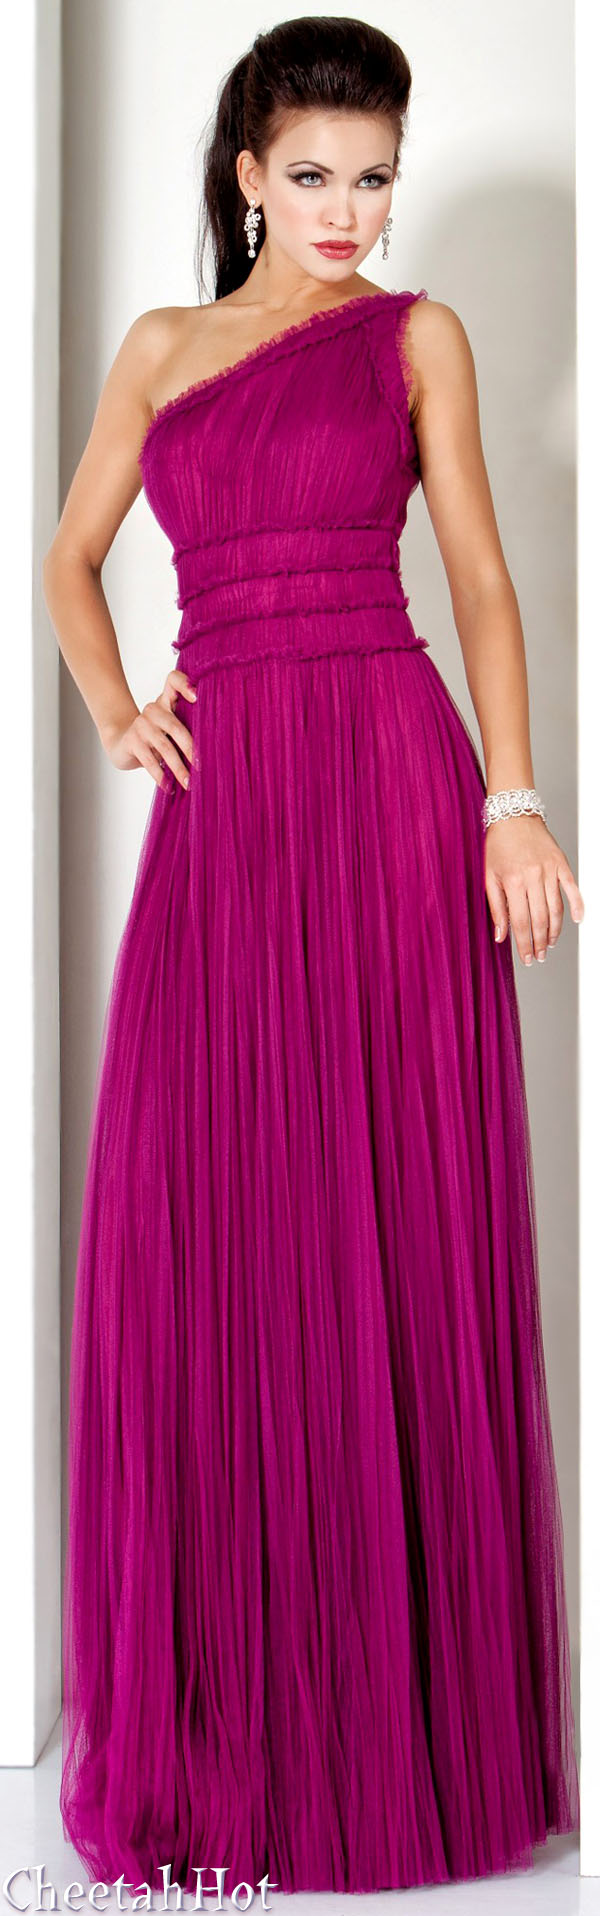 JOVANI - Authentic Designer Dress - Stunning Rasberry Gown | love ...